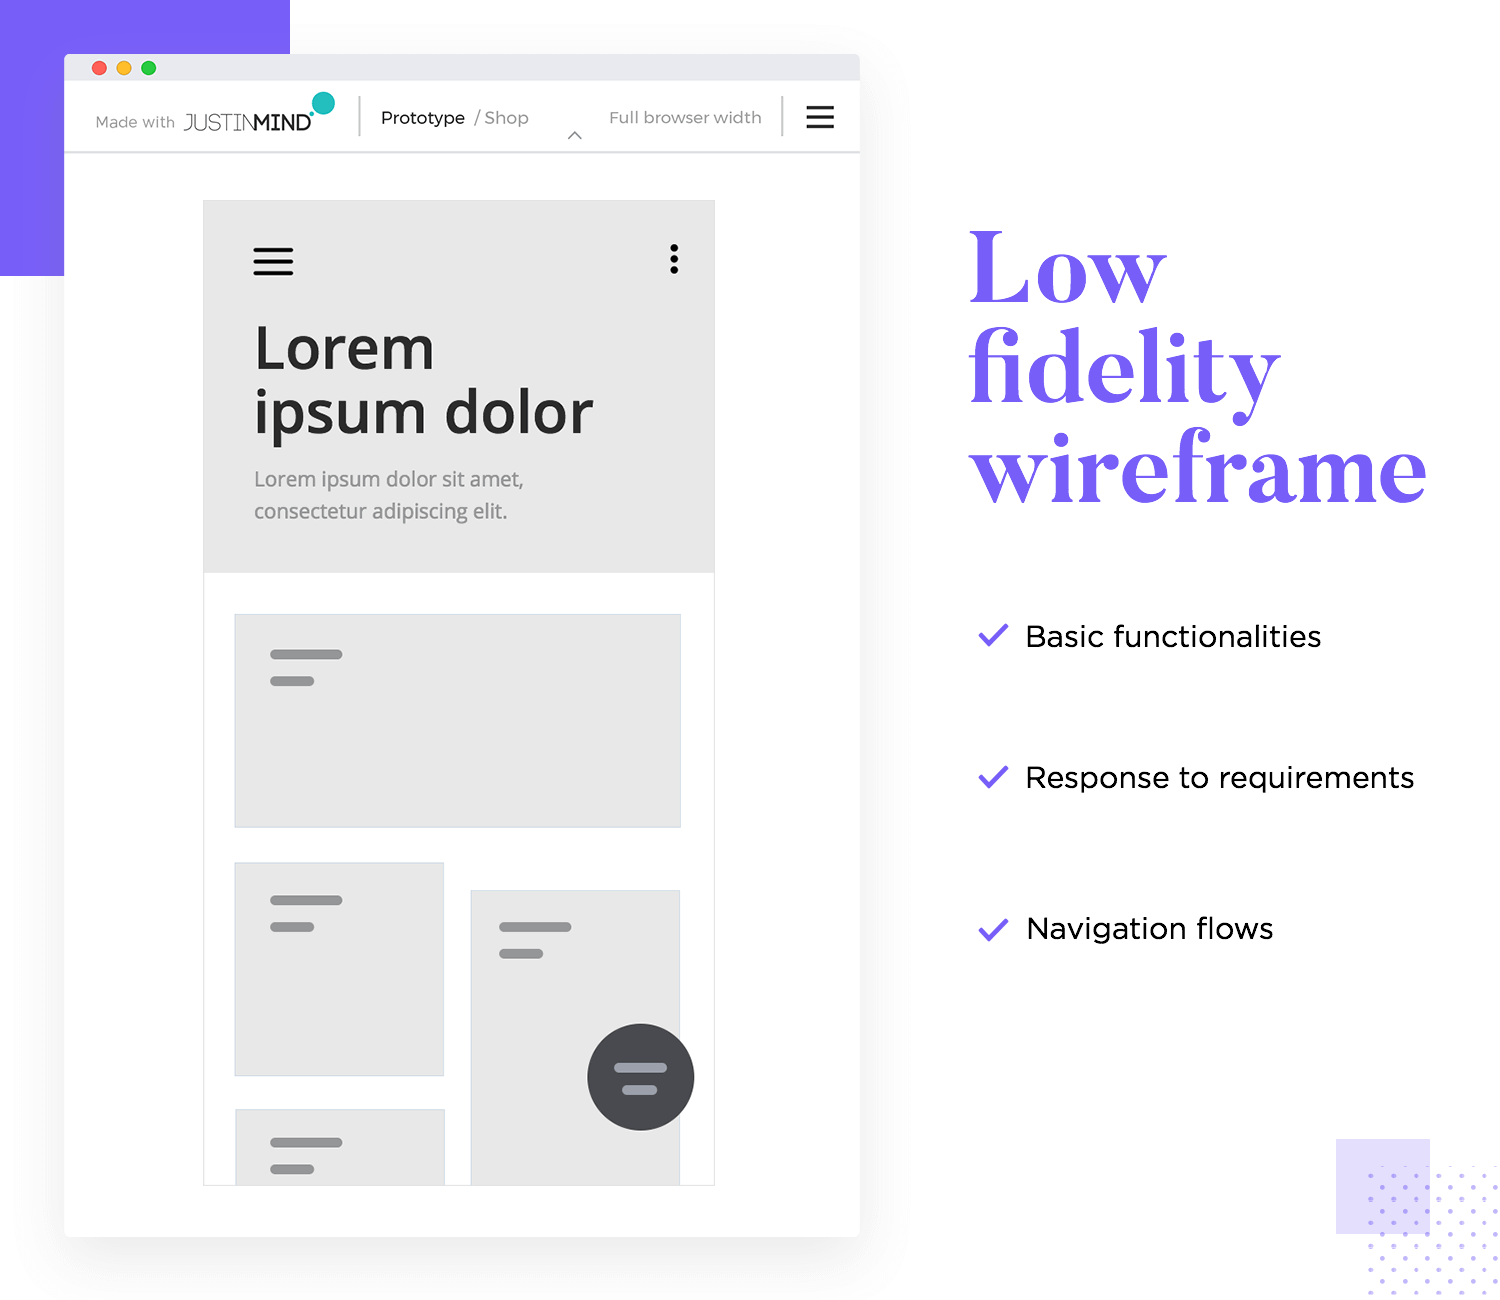 low fidelity wireframes are a great way to validate with testing